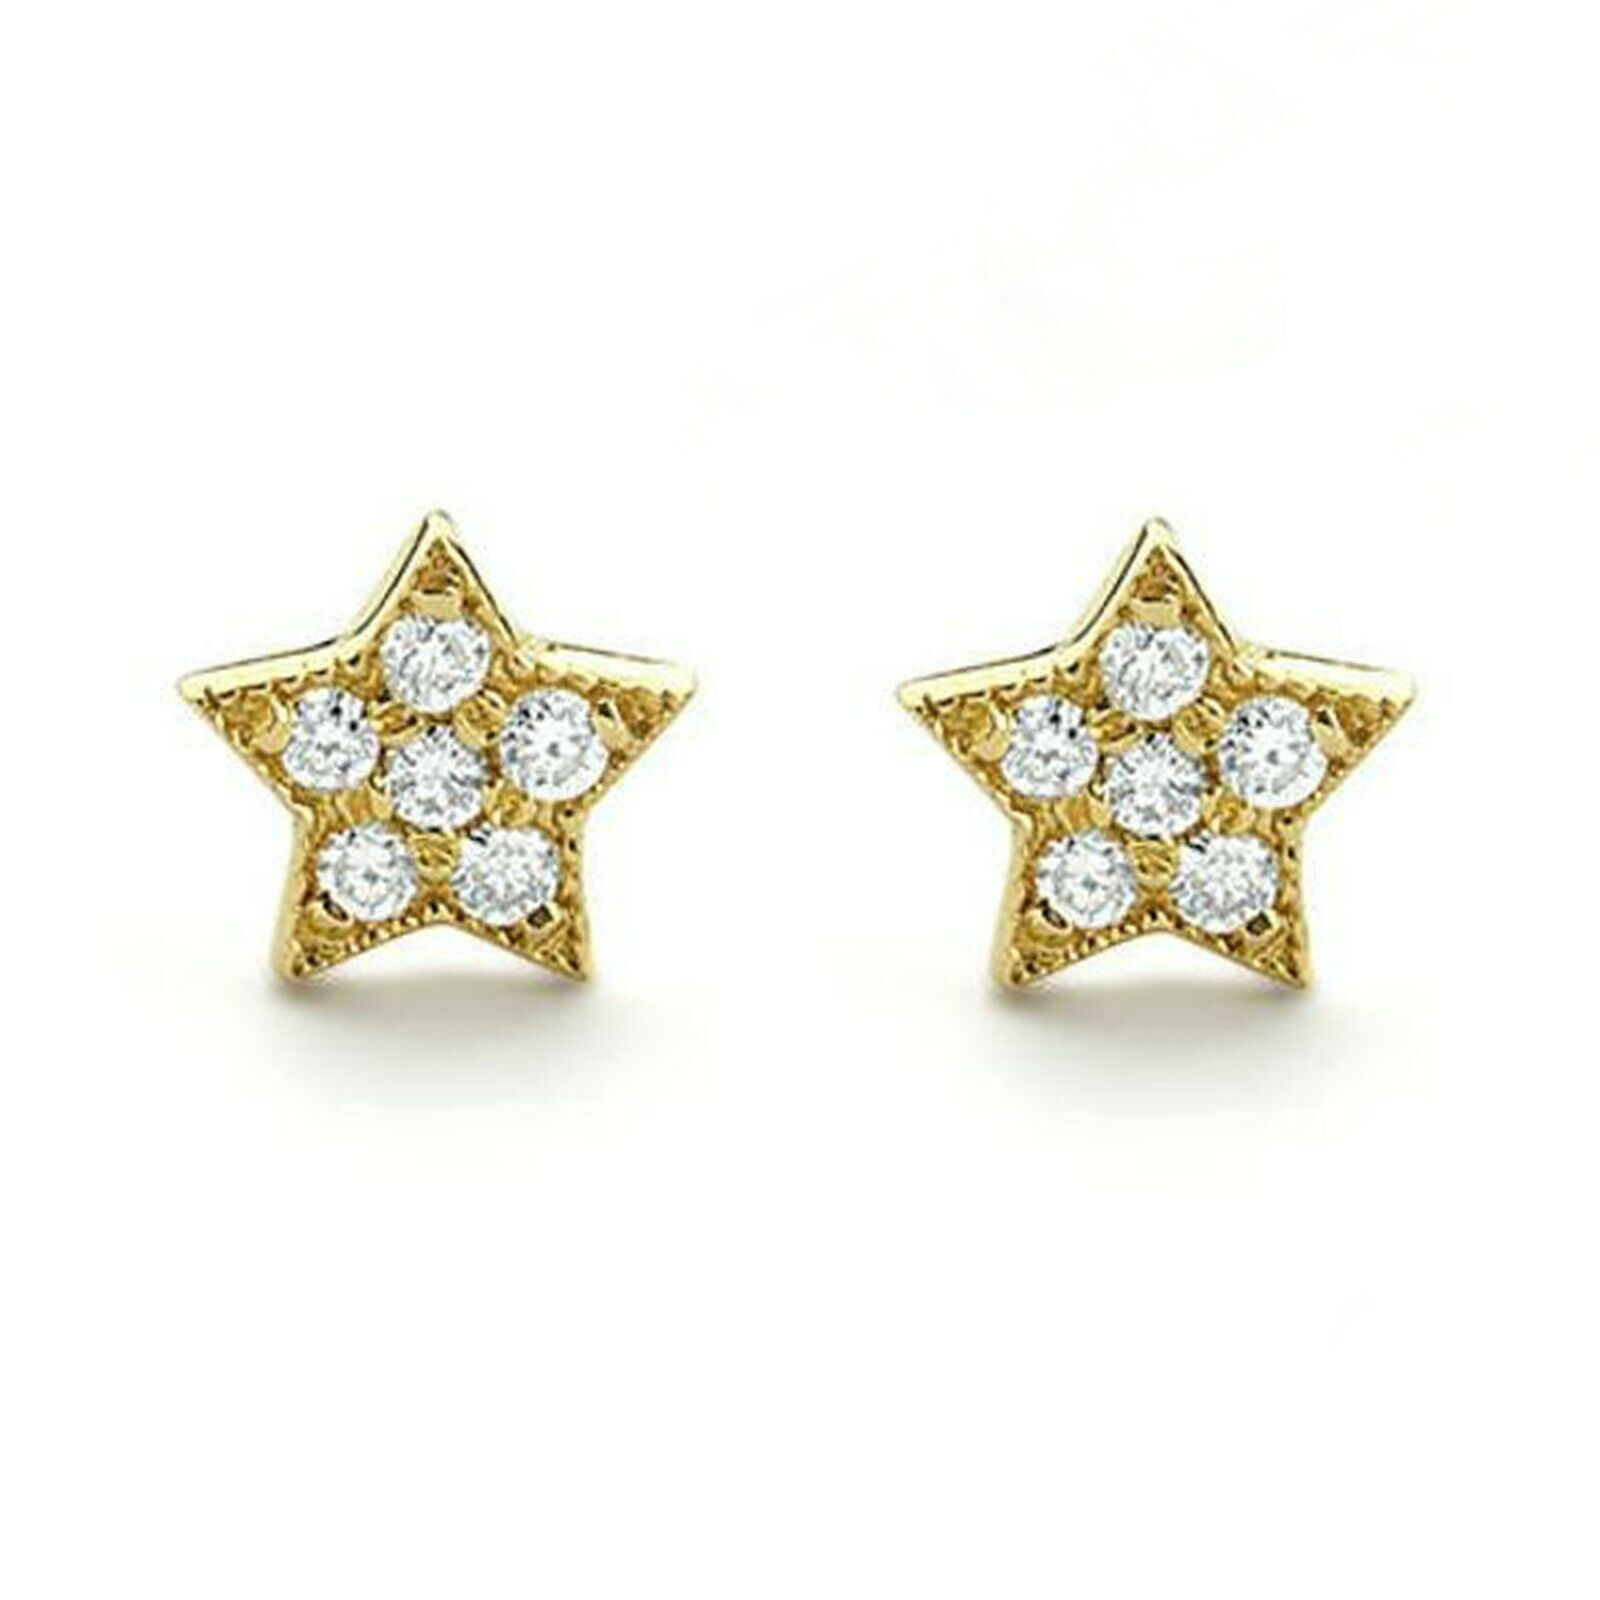 0.10 Ct Round Cut Diamond Tiny Star Stud Earrings In 14K Yellow gold Over